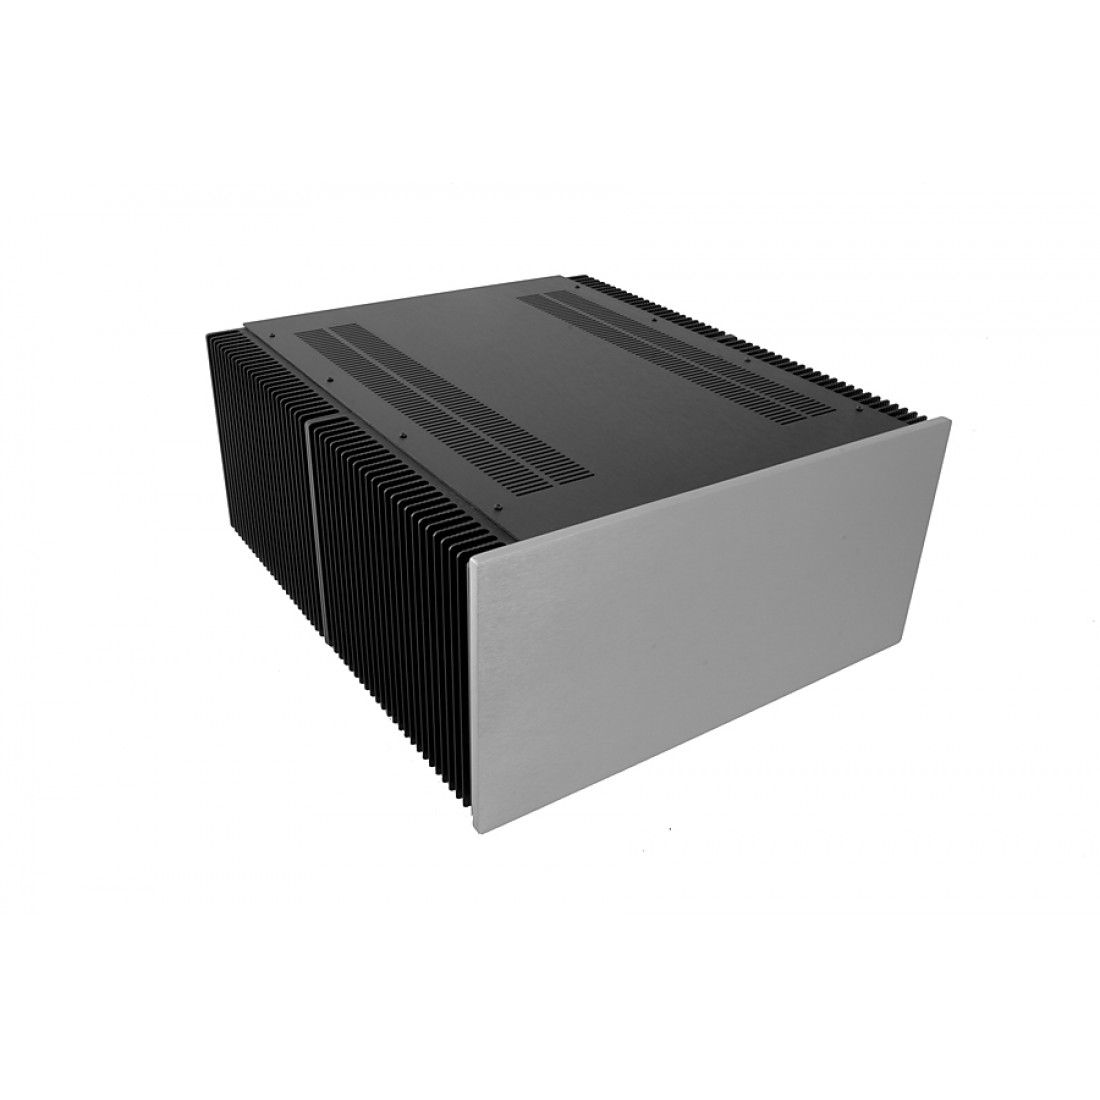 450x220mm front